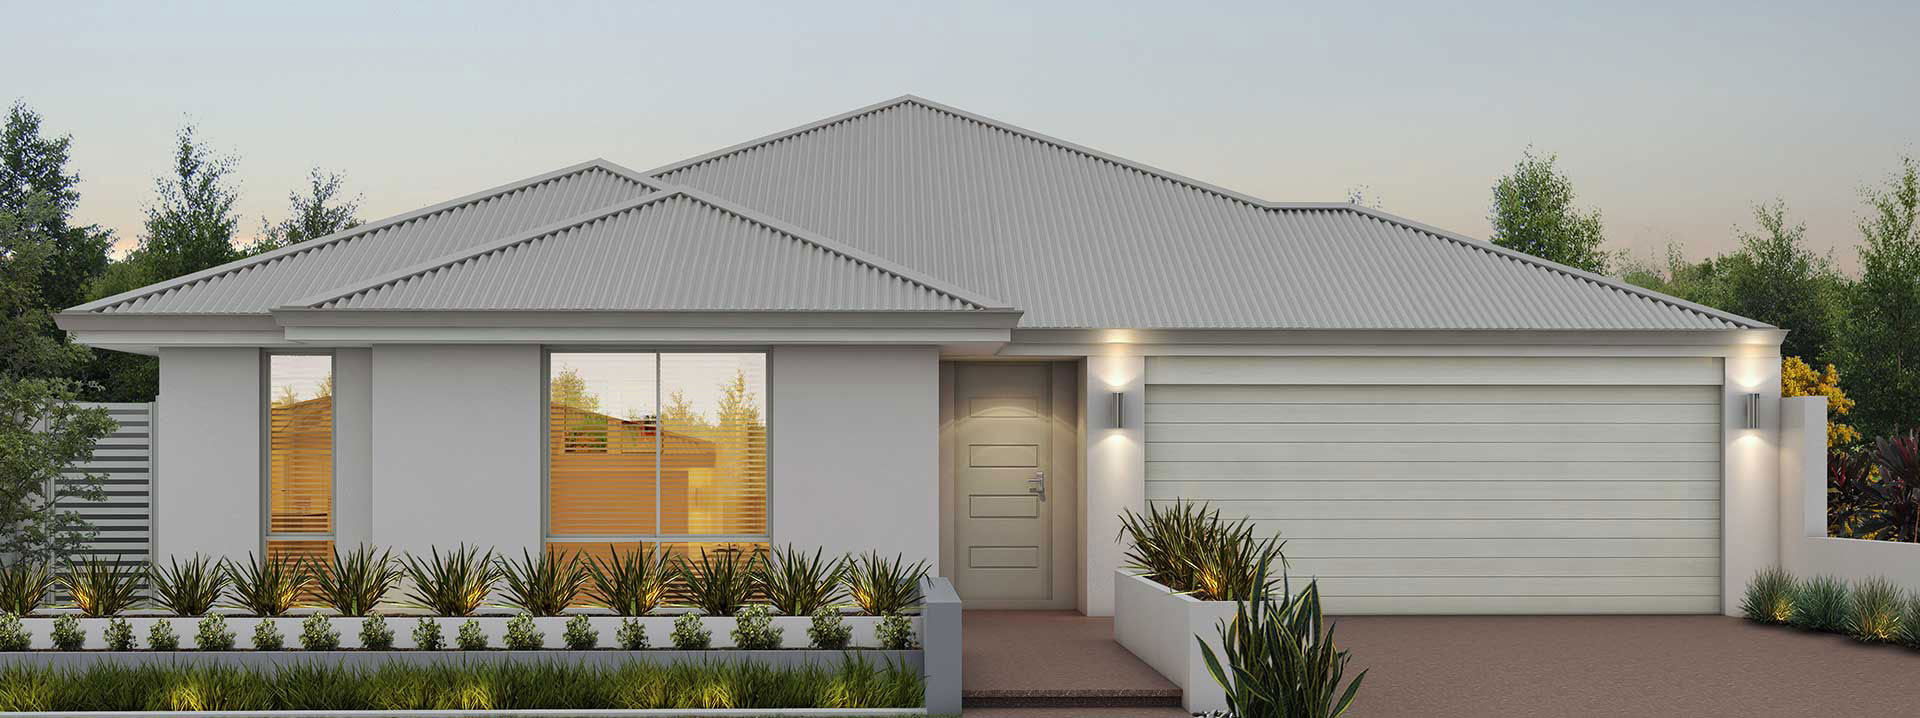 "House frontage of single storey home design ""My Kingston"""